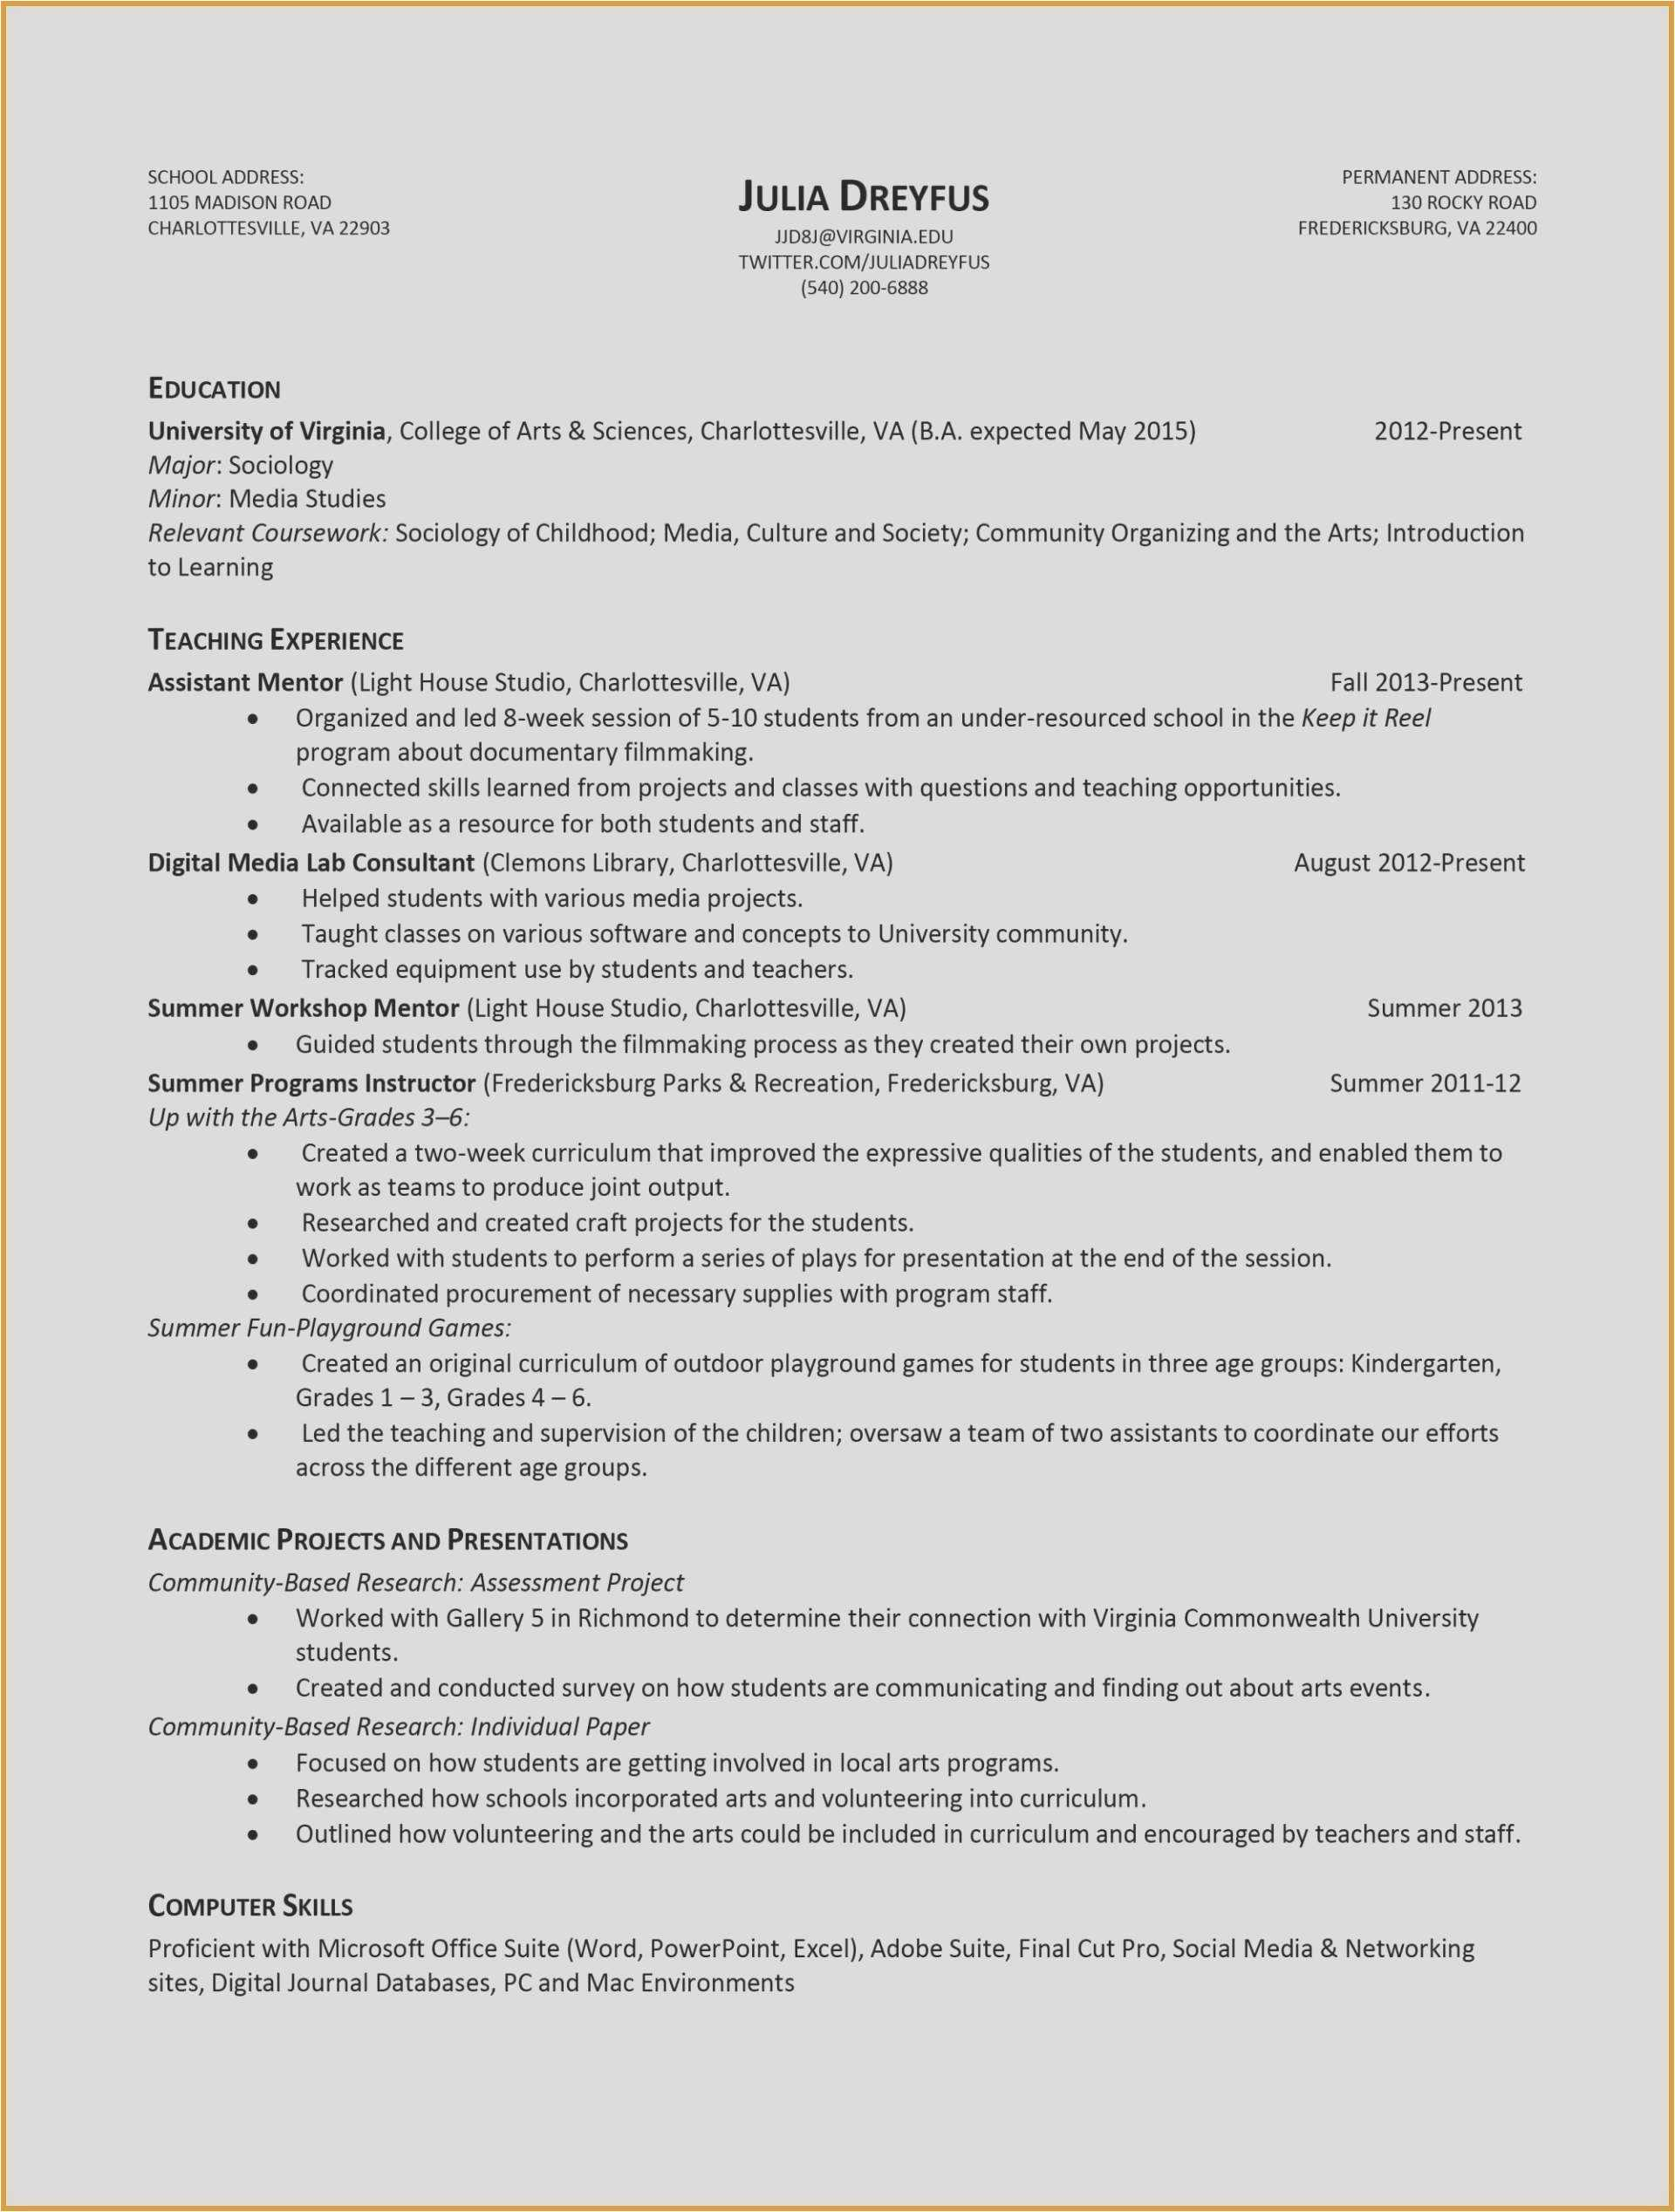 Social Media Skills On Resume - 29 Resume Examples for College Free